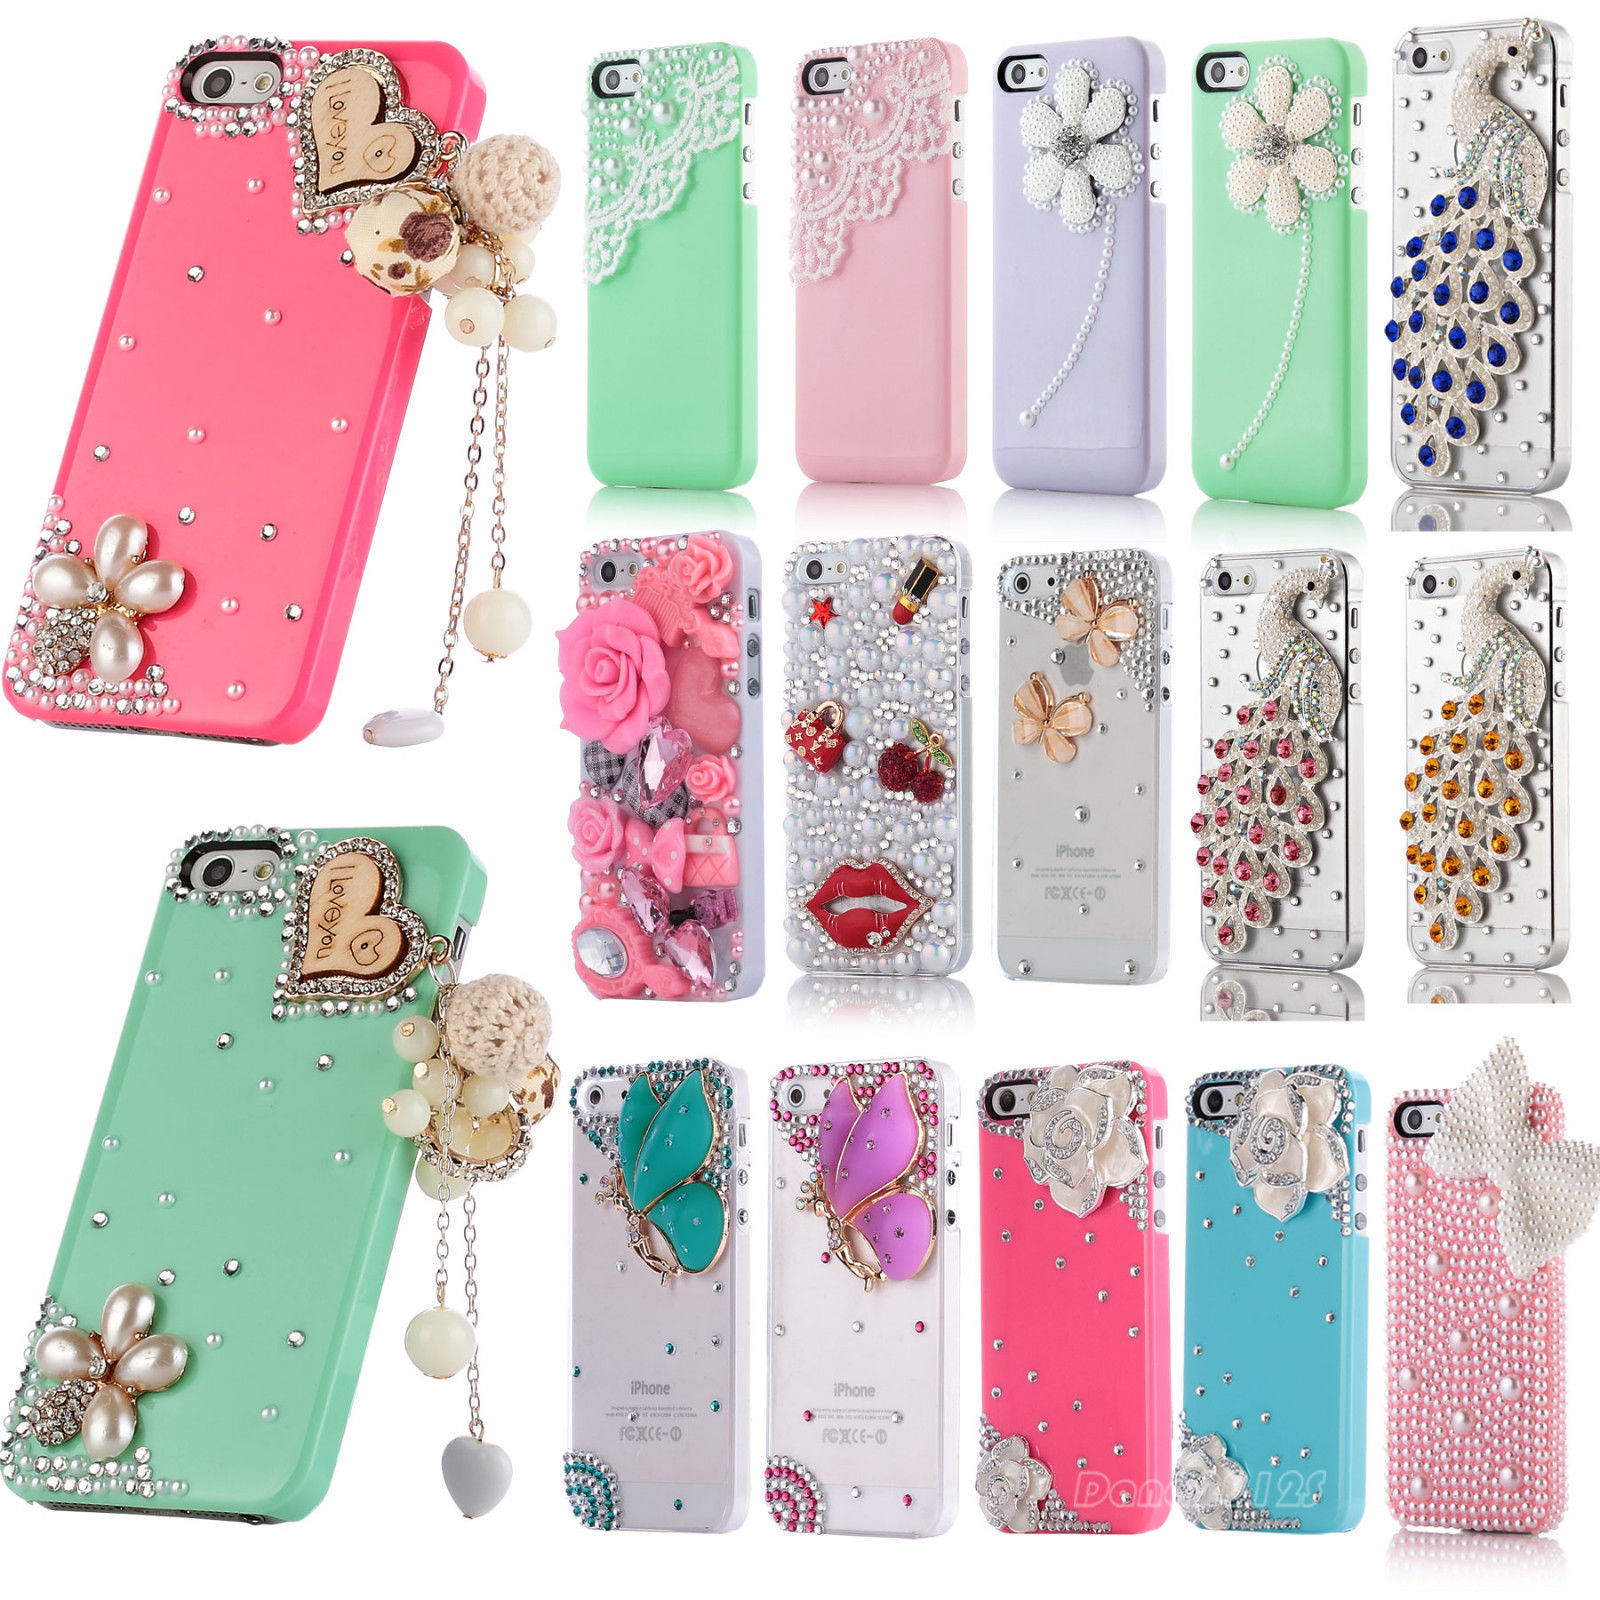 Samsung samsung galaxy s3 bling phone cases : For Apple iPhone 5 5S Bling Cute Diamond Crystal Pearl Flower Hard 3D ...